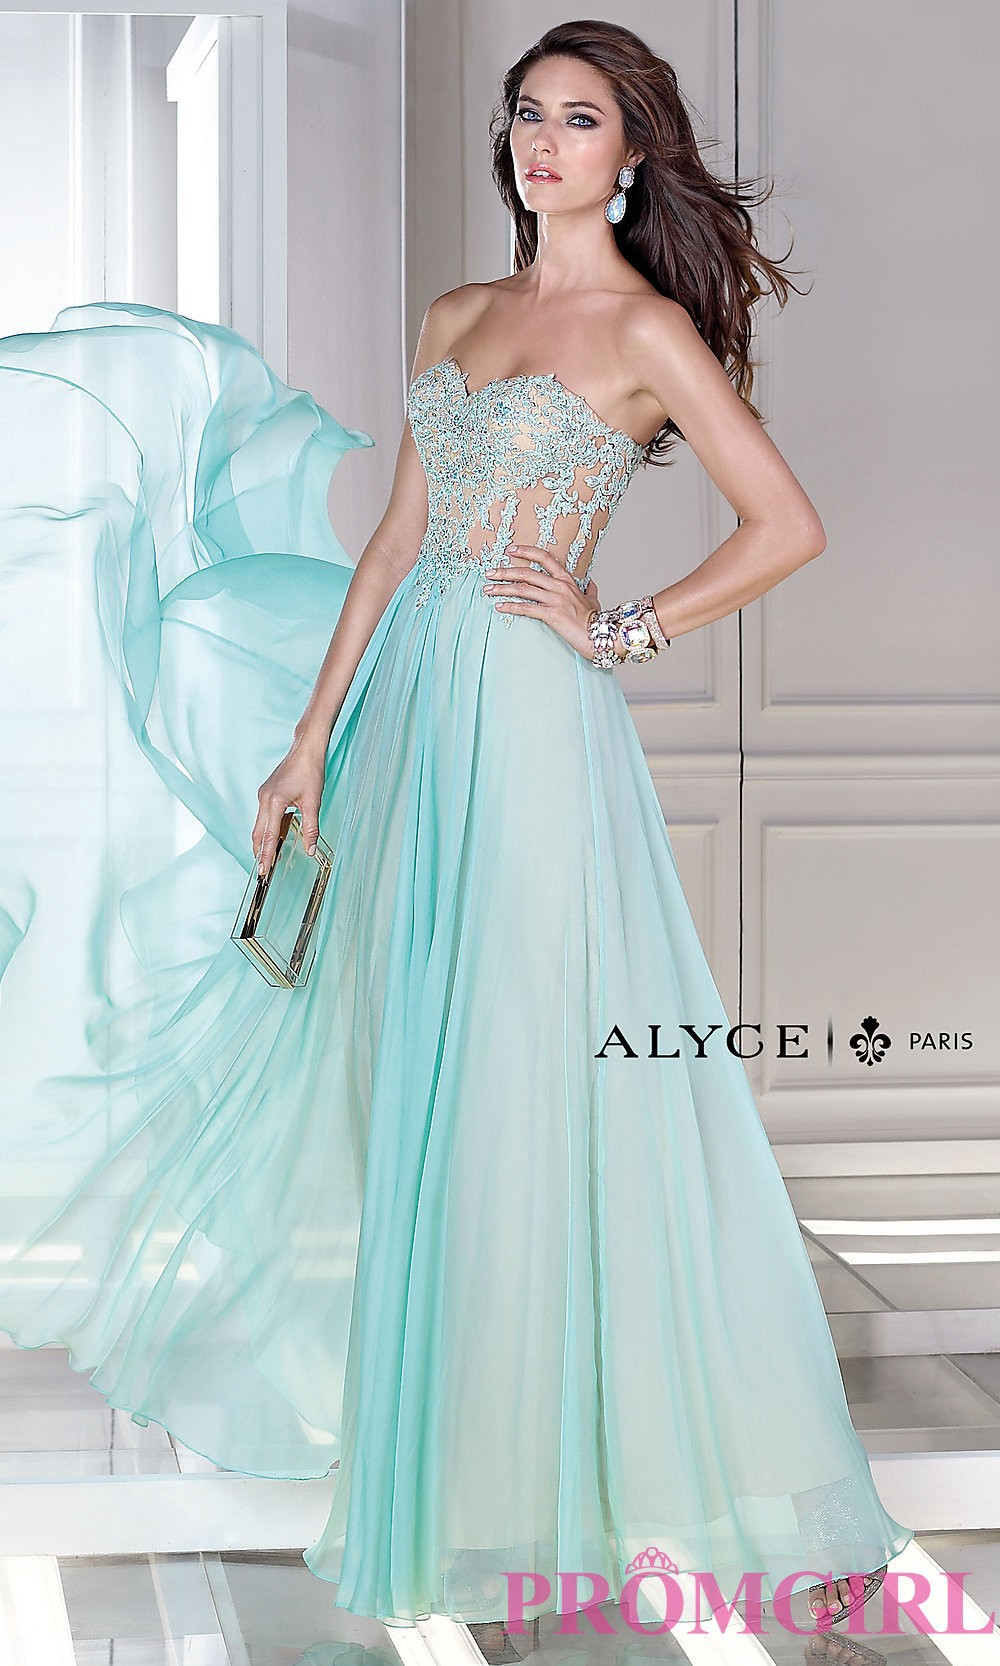 Alyce Corset Strapless Dress with Sheer Bodice AL-35677